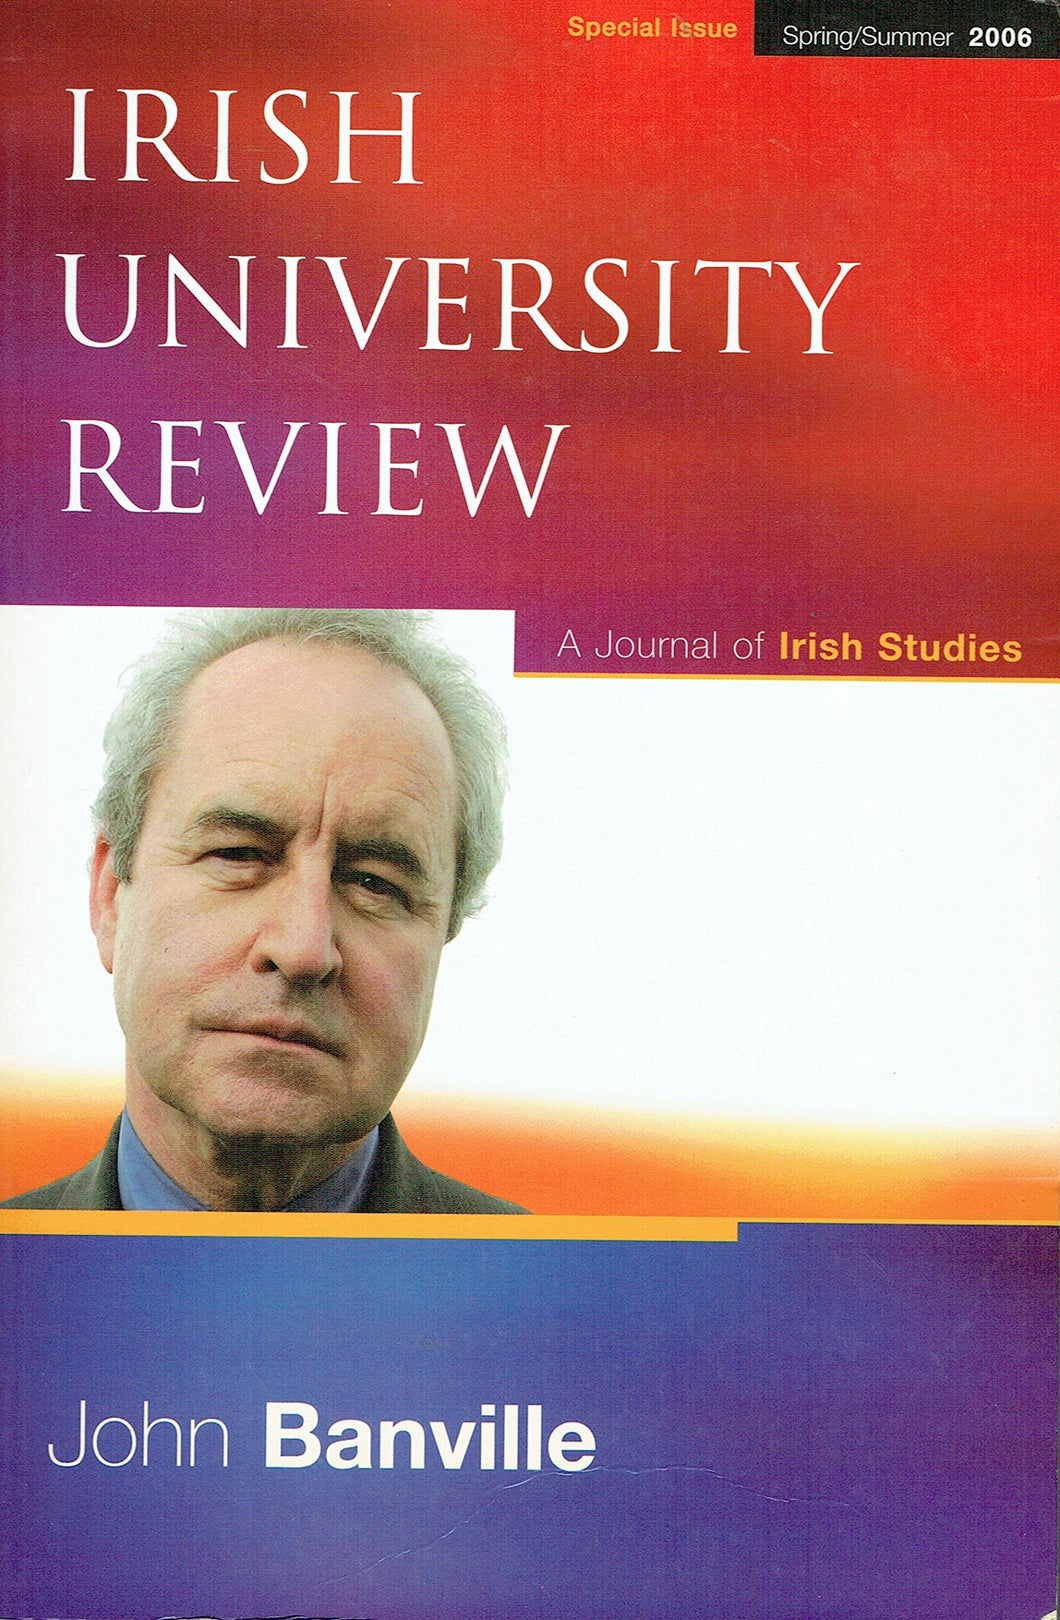 Irish University Review - A Journal of Irish Studies: John Banville Special Issue - Spring/Summer 2006. Volume 36, No. 1